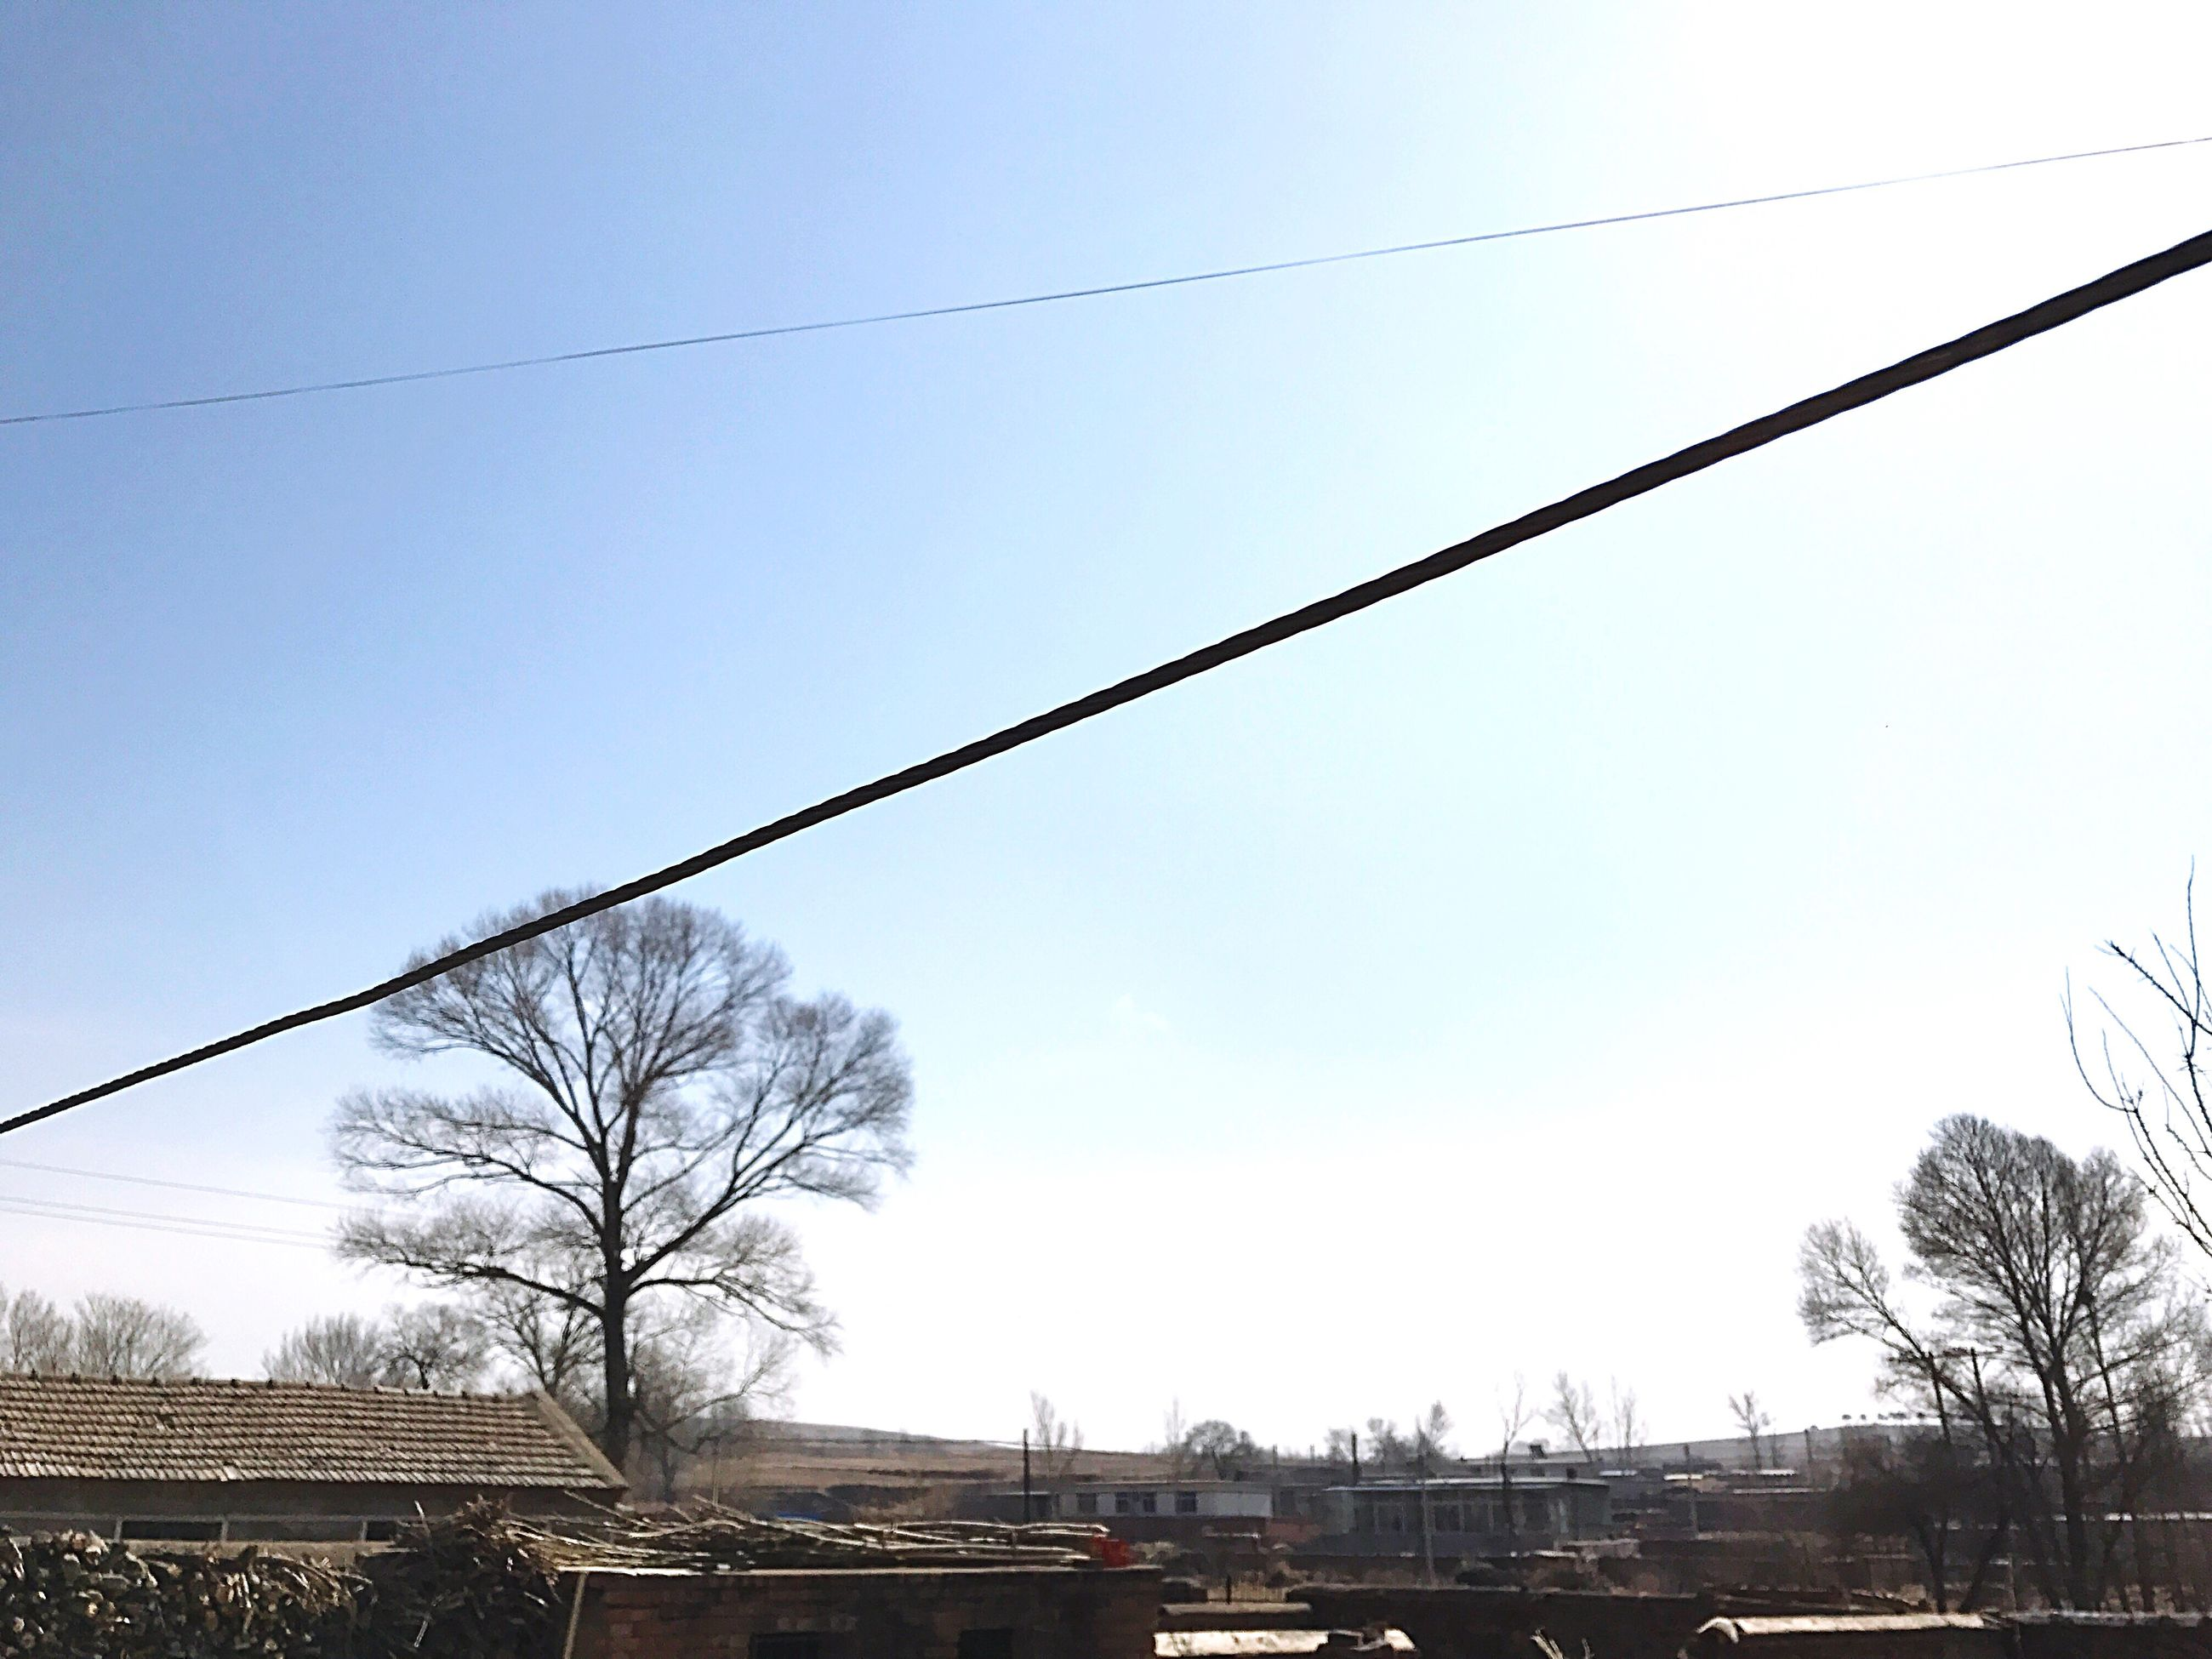 low angle view, sky, outdoors, no people, built structure, transportation, power line, architecture, building exterior, connection, day, tree